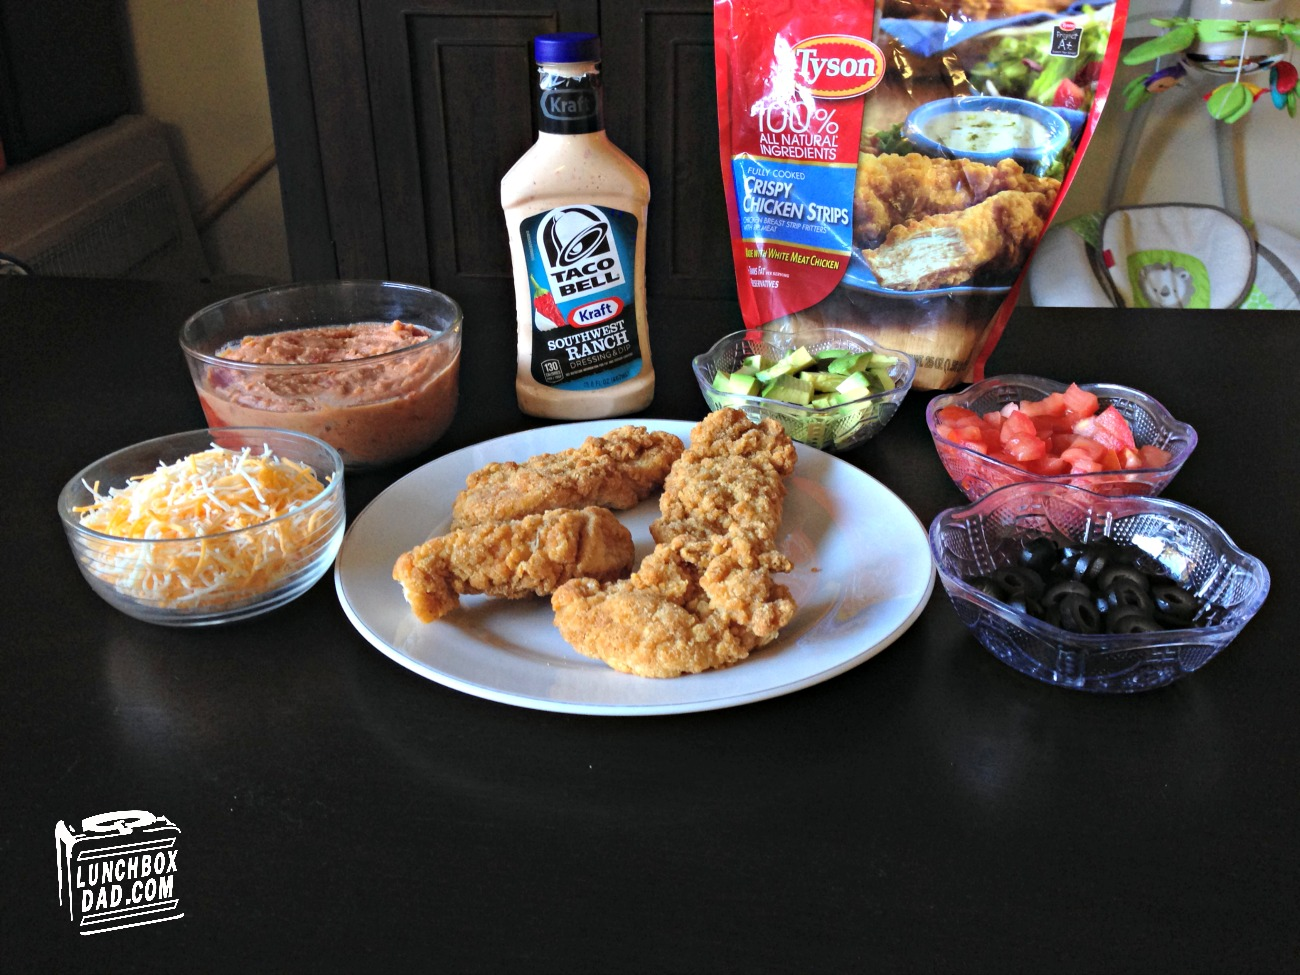 Tyson Super Moments Seven Layer Dip ingredients #SuperMoments #ad #cbias